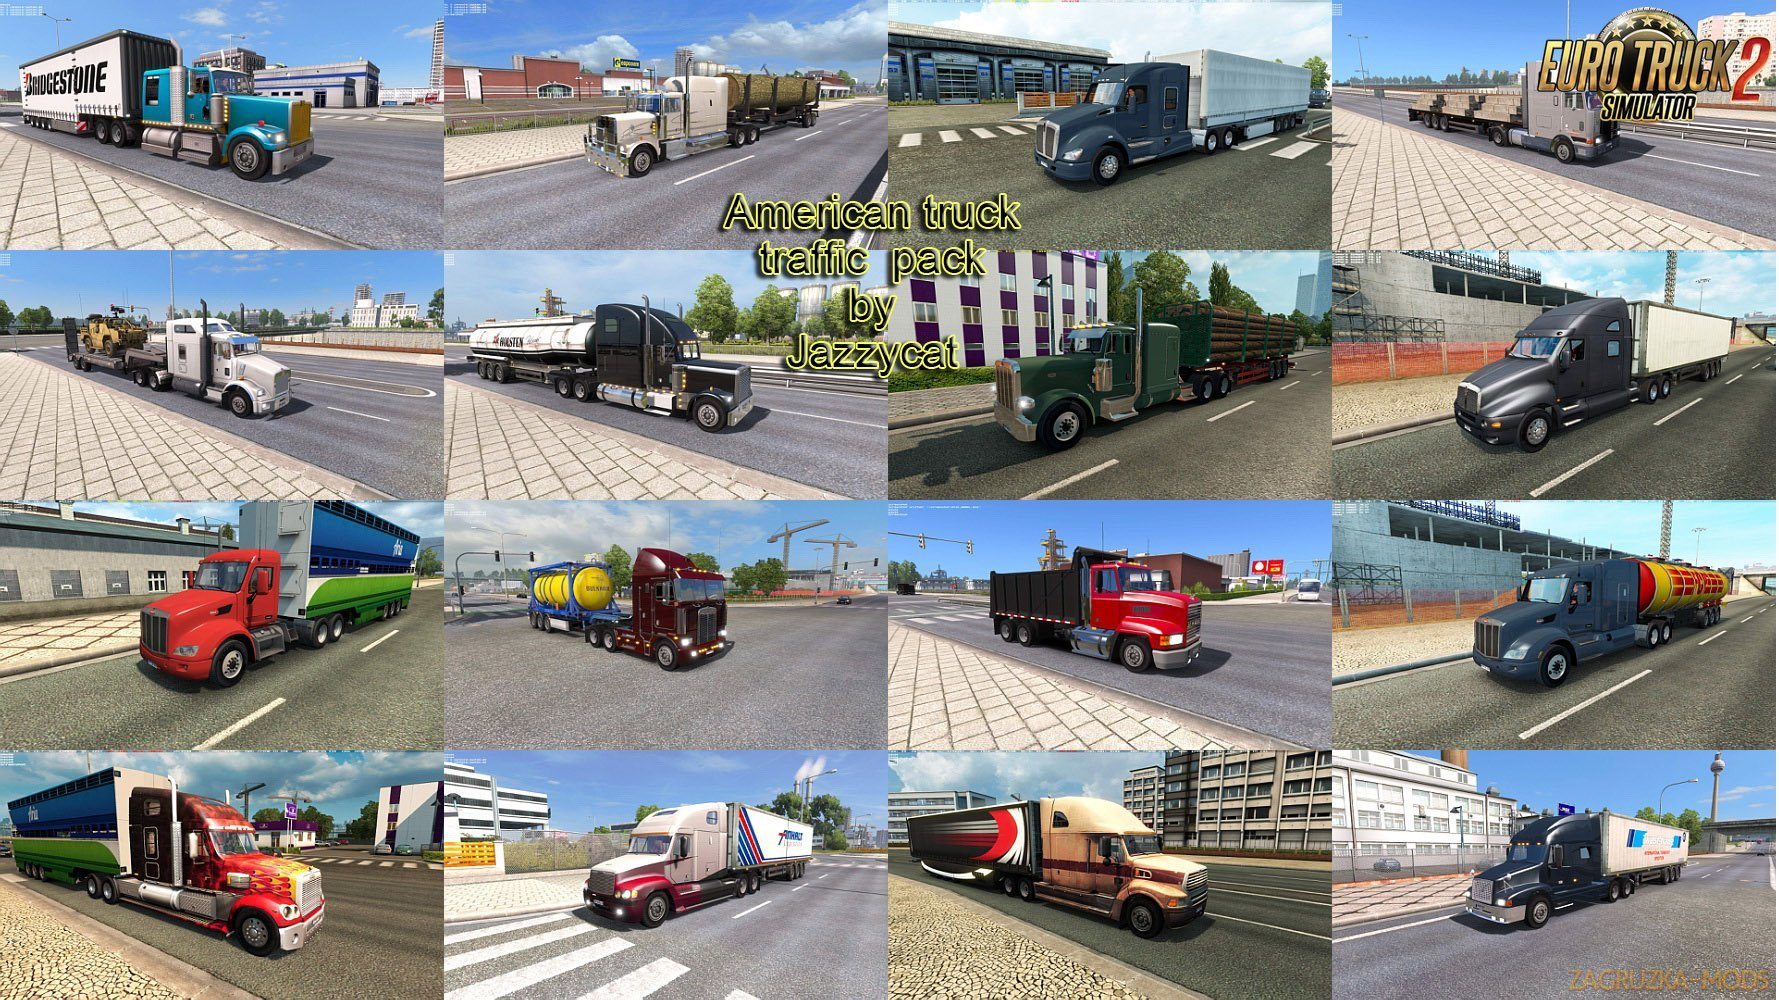 American Truck Traffic Pack v1.8 by Jazzycat